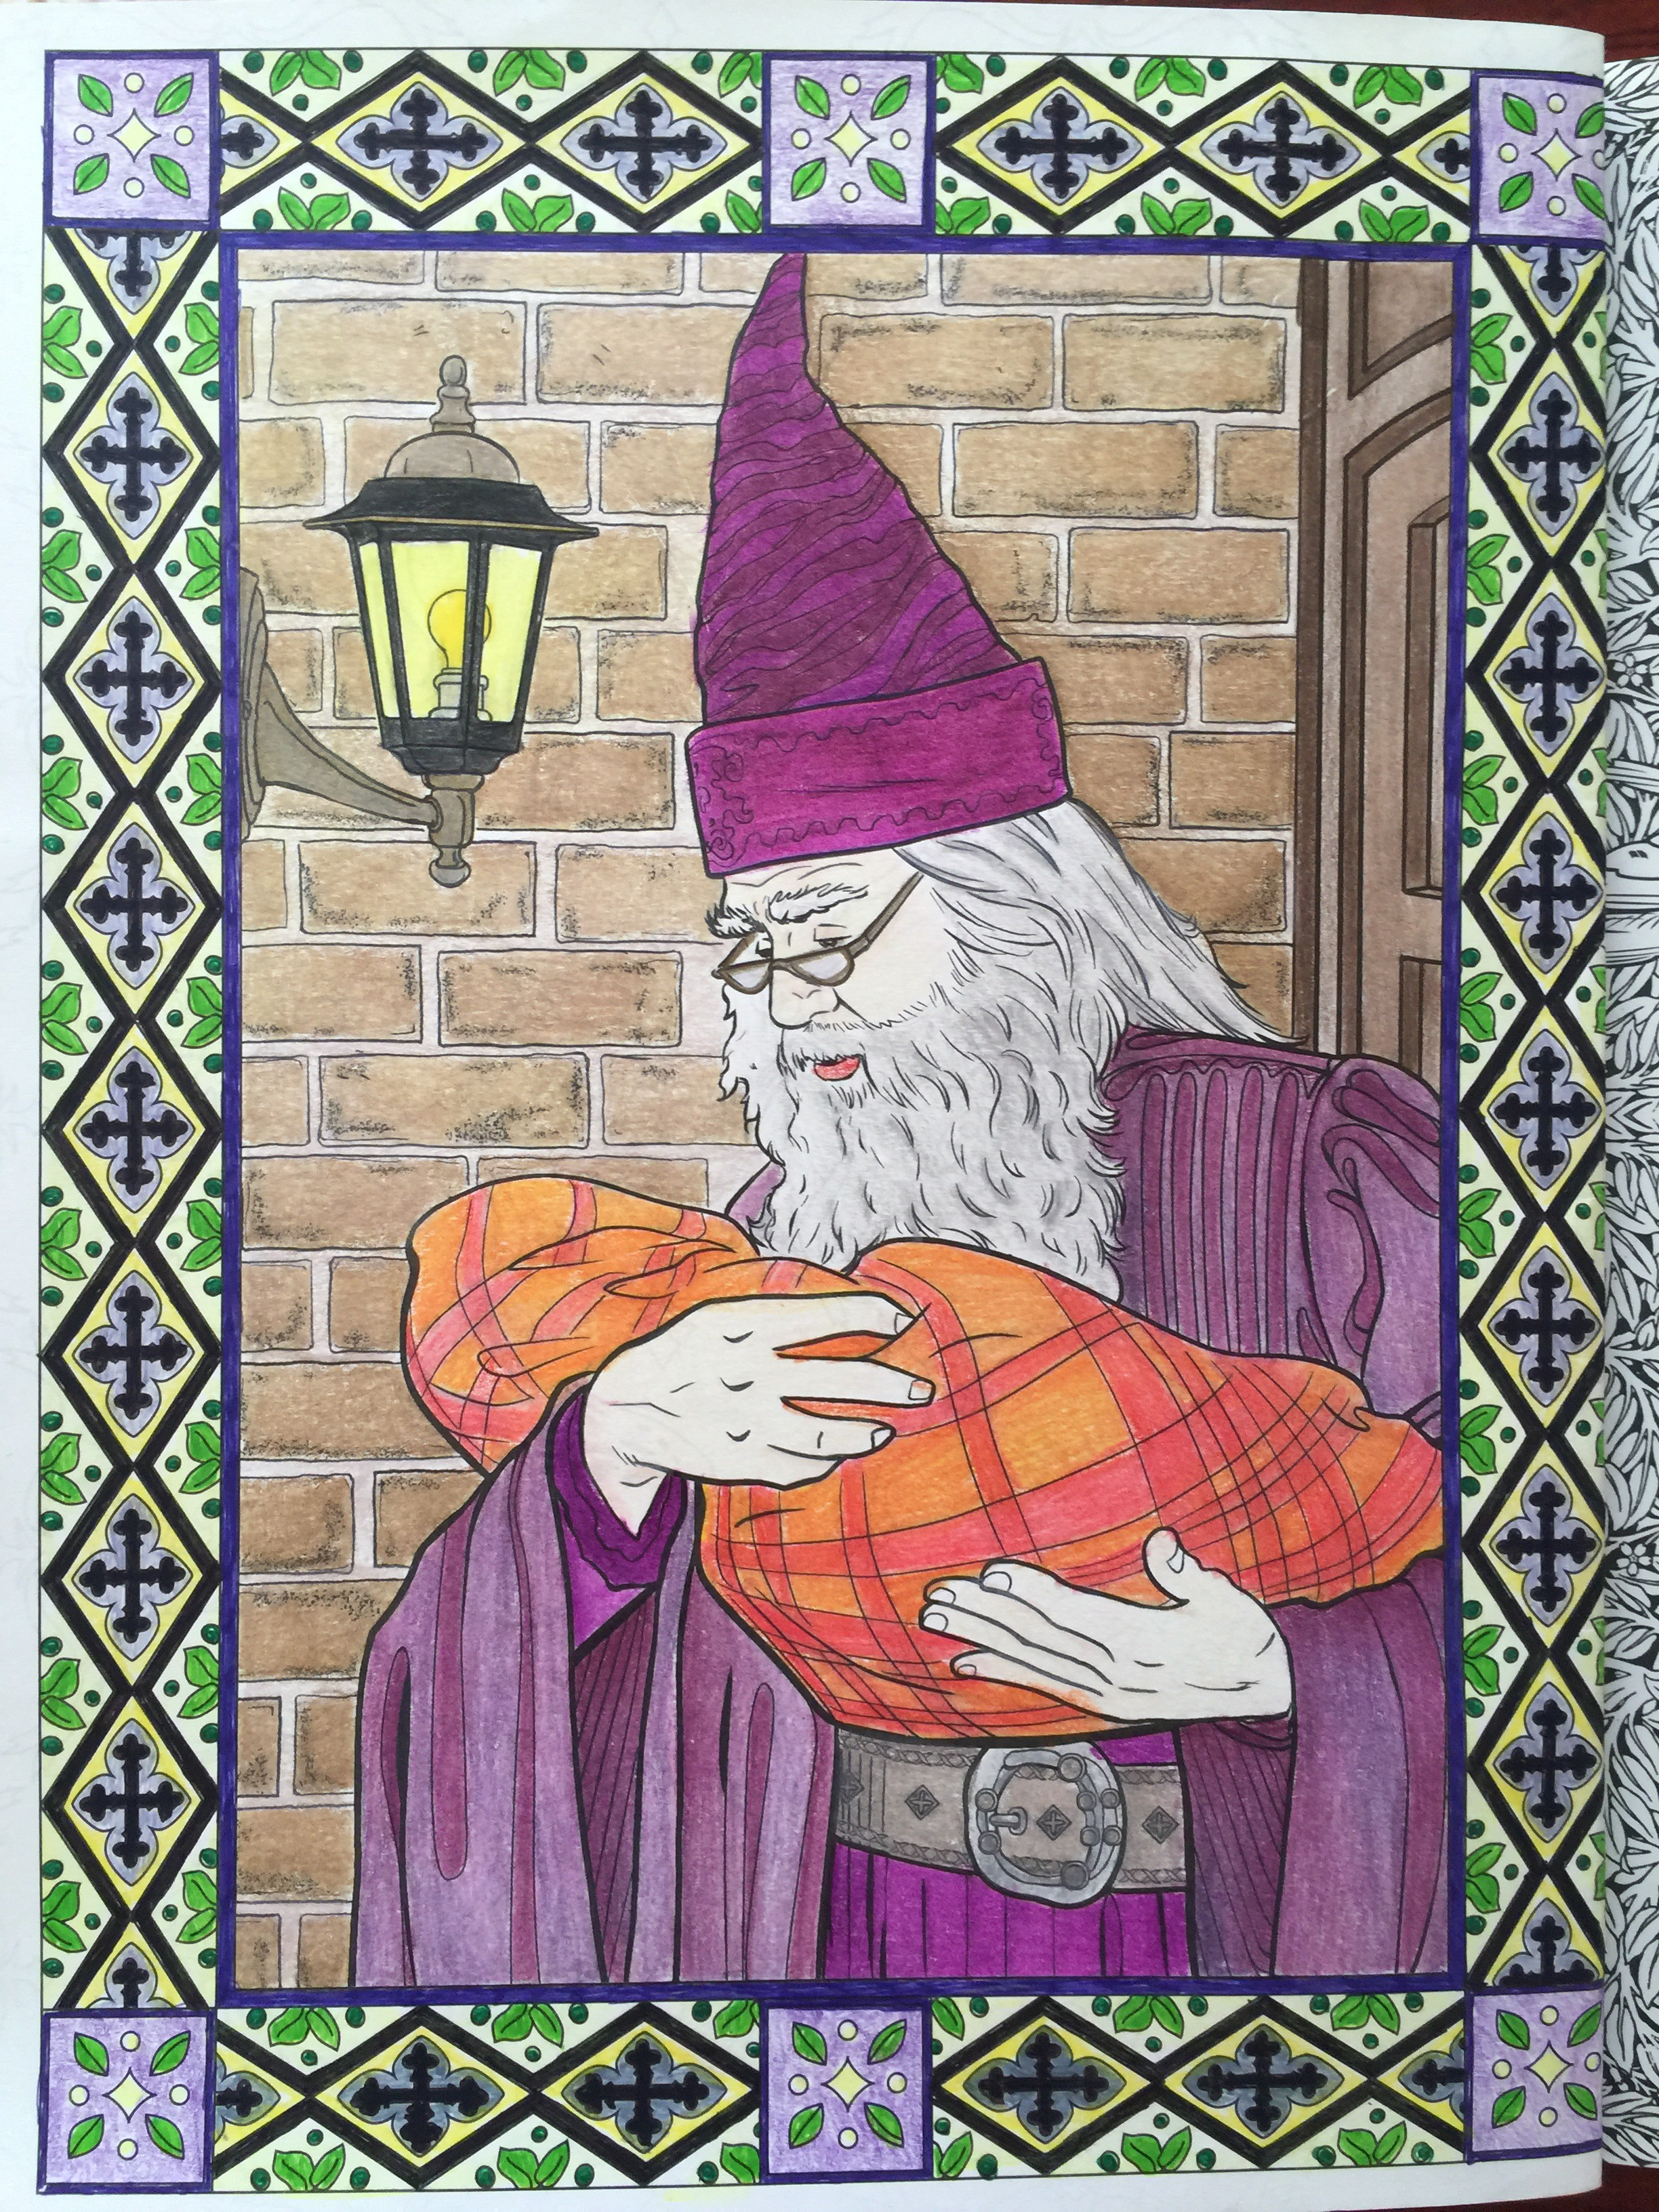 Harry Potter And The Deathly Hallows Part Wiki A Book Report On